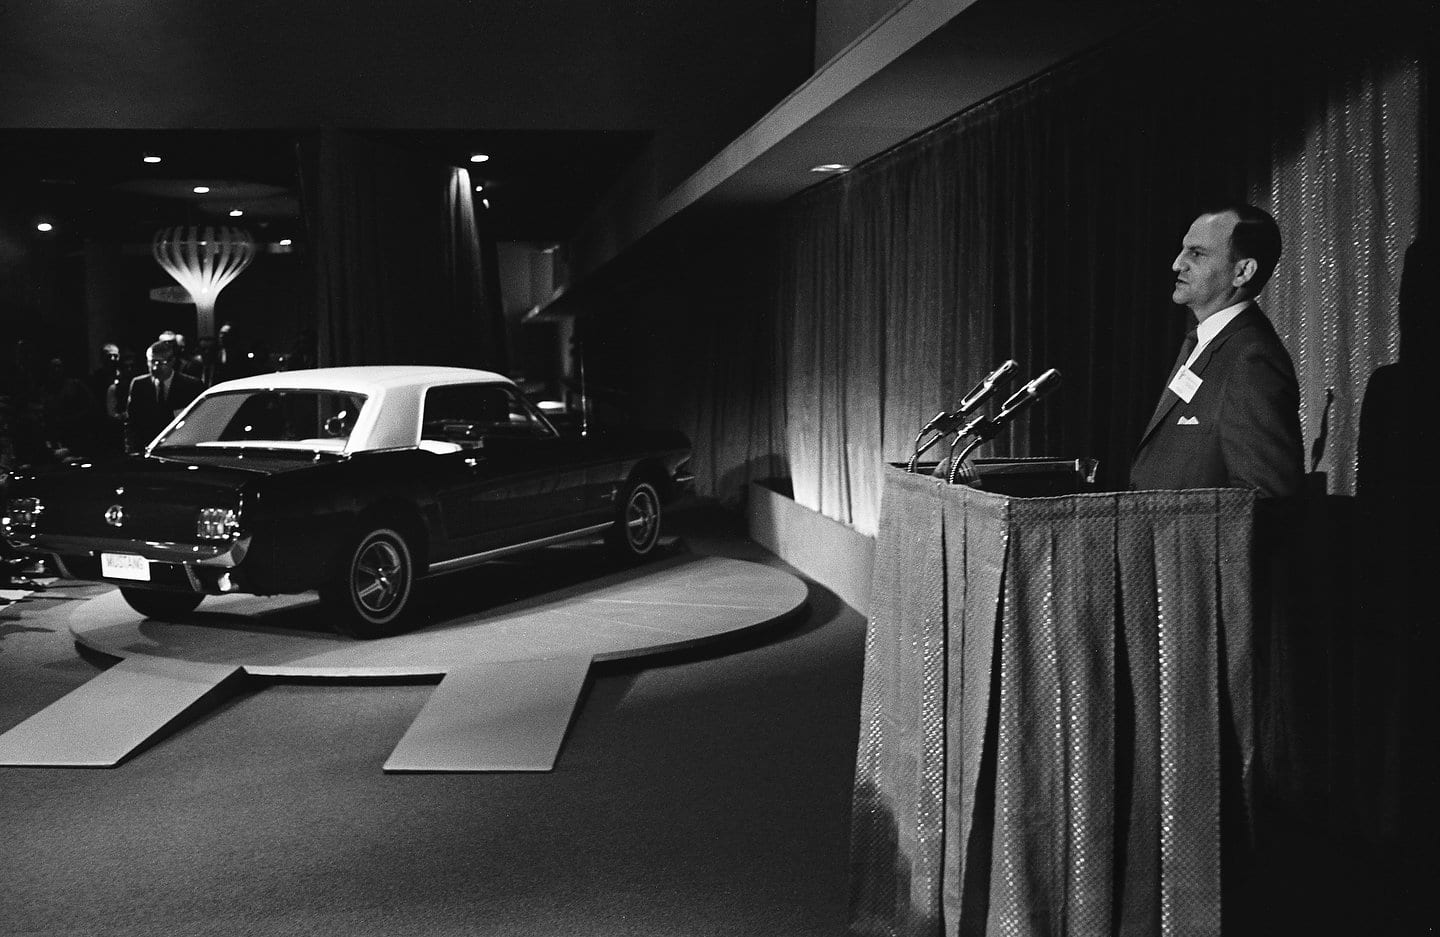 Lee Iacocca introduces the new 1965 Ford Mustang to the media in the Ford Pavilion at the 1964 World's Fair in New York